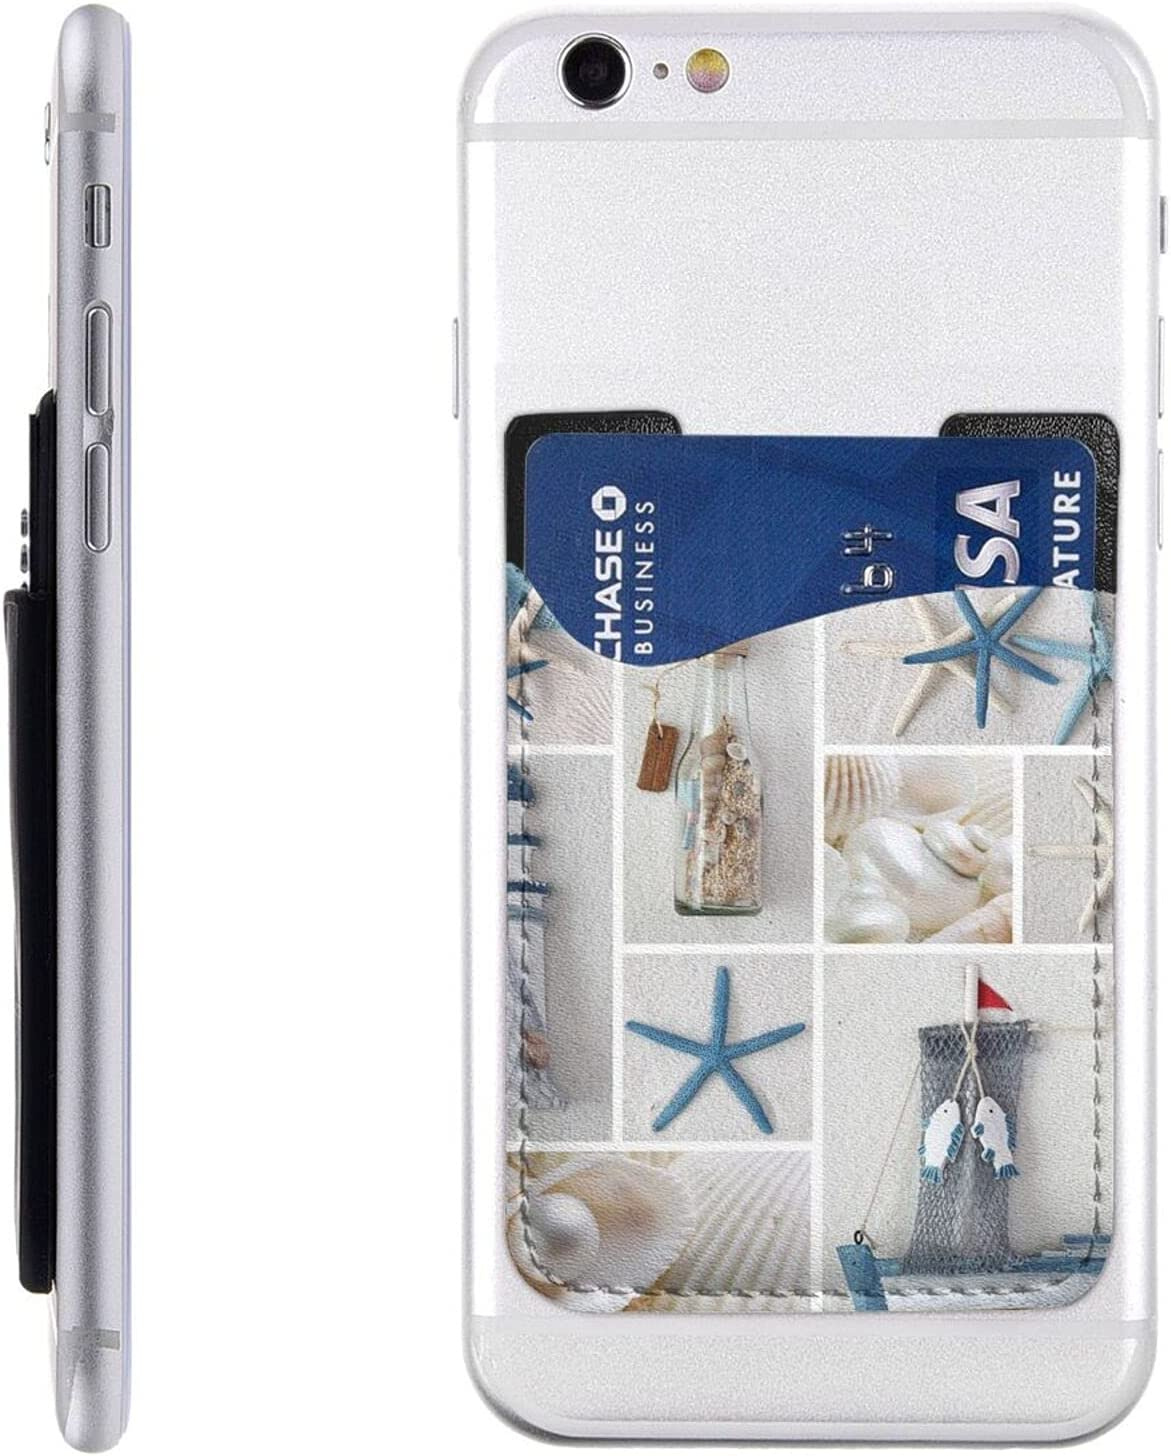 Starfish and Over item handling ☆ Lighthouse Super beauty product restock quality top Phone Card Holder On Ca Cell Stick